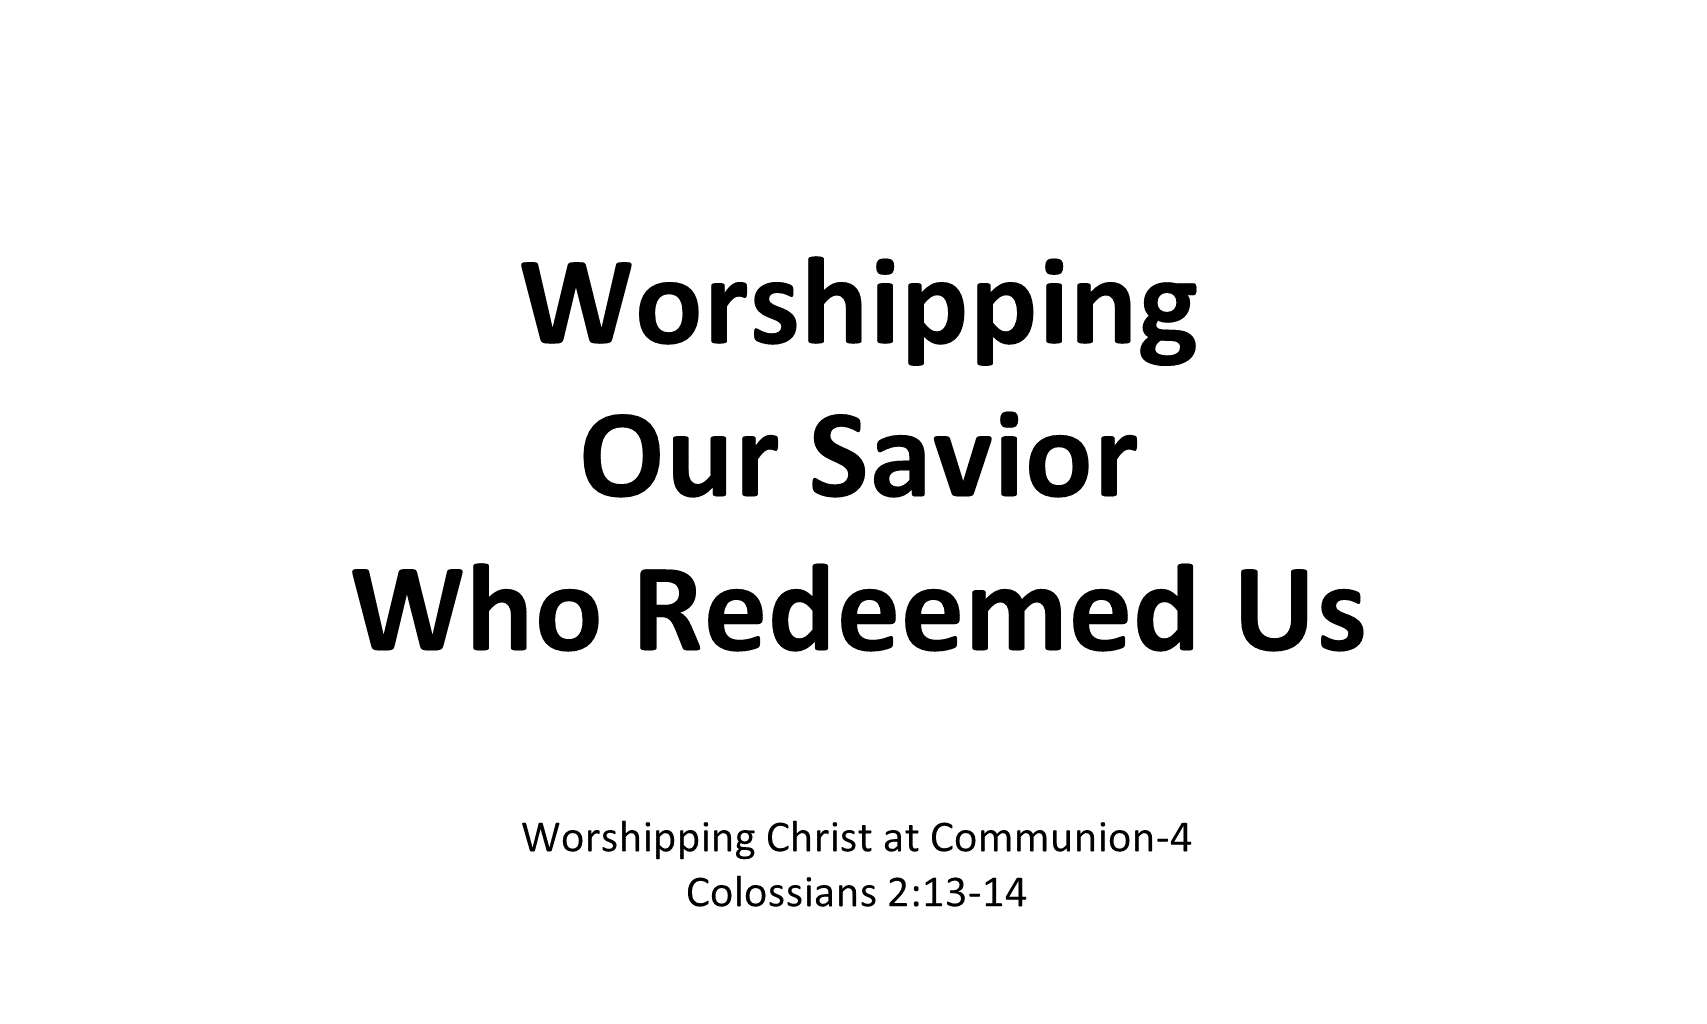 WCC-05 - Worshipping Our Savior Who Redeemed Us (30)